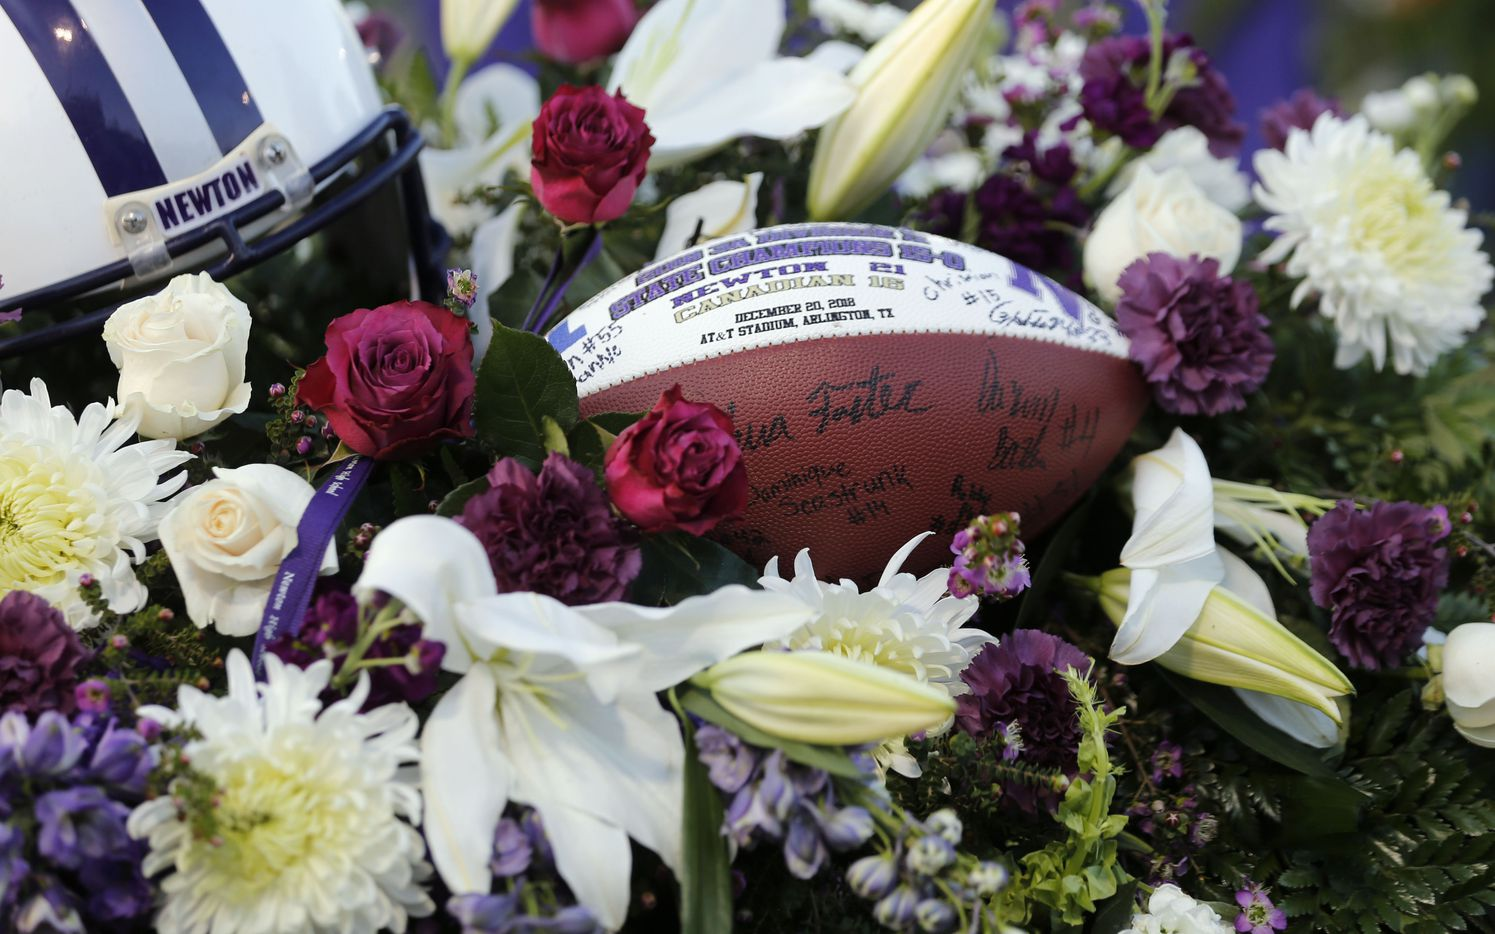 """Signed football with the December 20, 2018 state championship date on it rests on the casket of Newton High School head football coach William Theodore """"W.T."""" Johnston during his memorial service at Curtis Barbay Field at Newton High School in Newton, Texas on Wednesday, May 15, 2019. (Vernon Bryant/The Dallas Morning News)"""